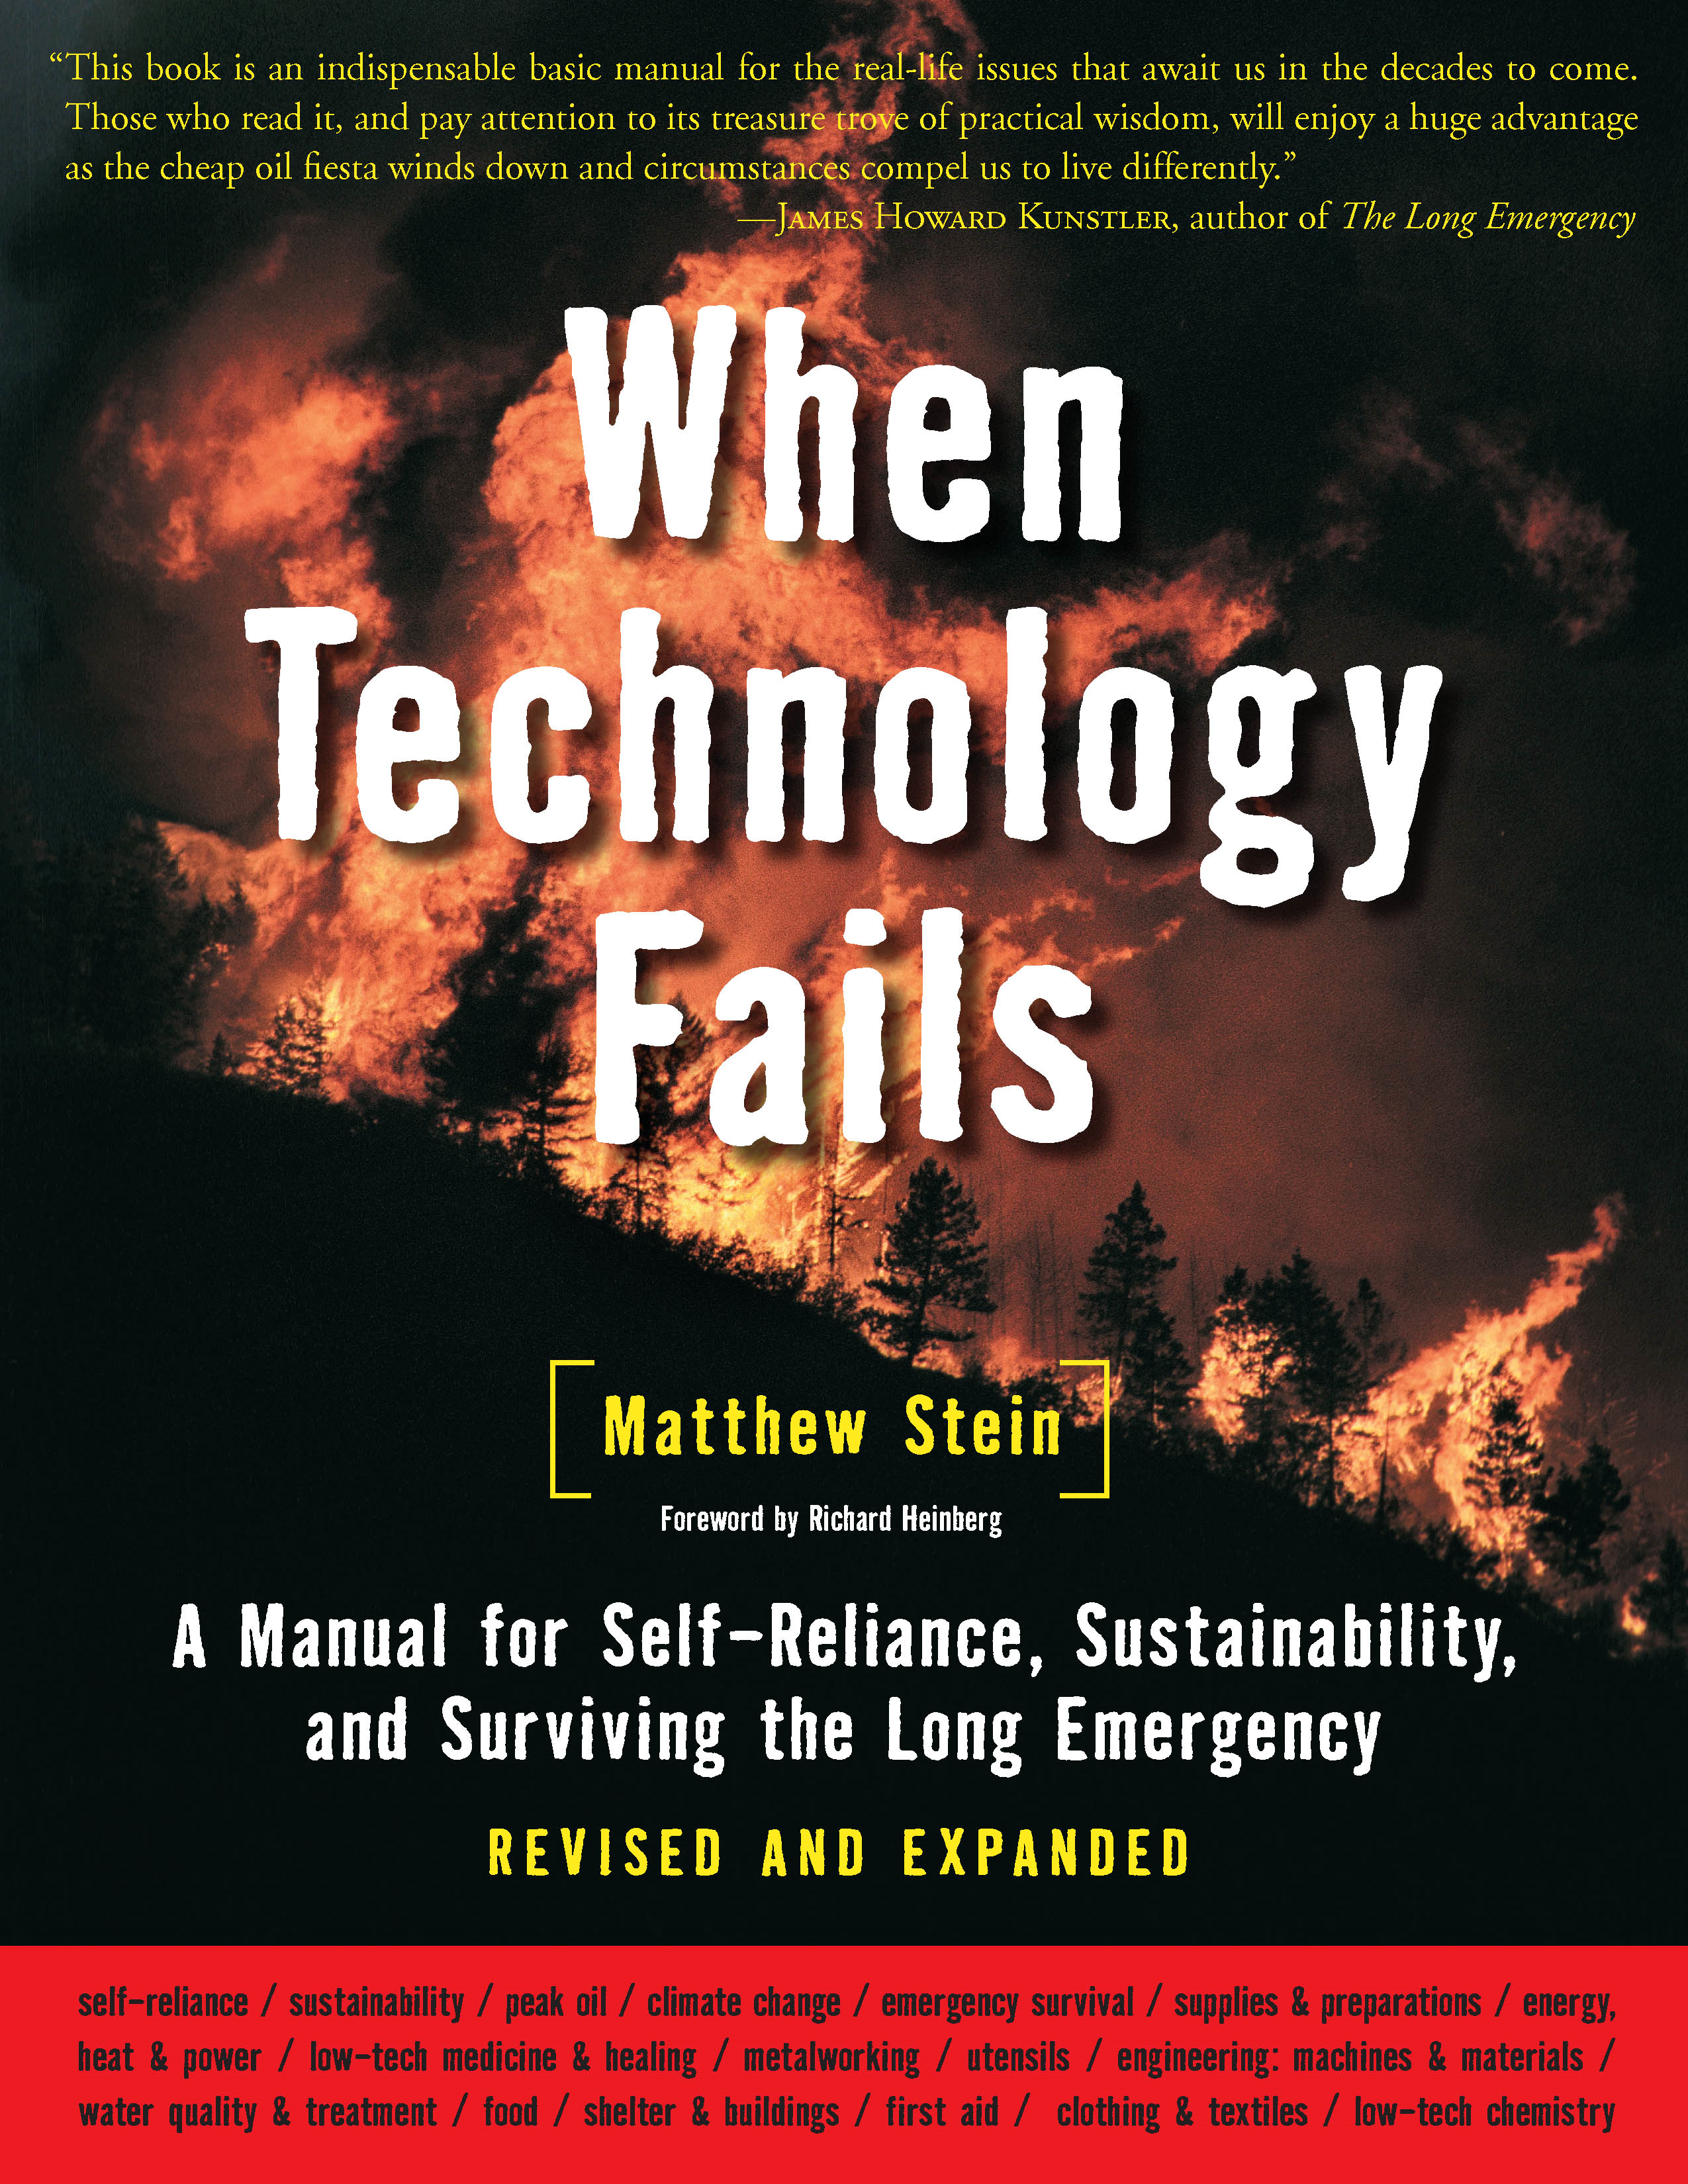 When Technology Fails (Revised & Expanded): A Manual for Self-Reliance, Sustainability, and Surviving the Long Emergency